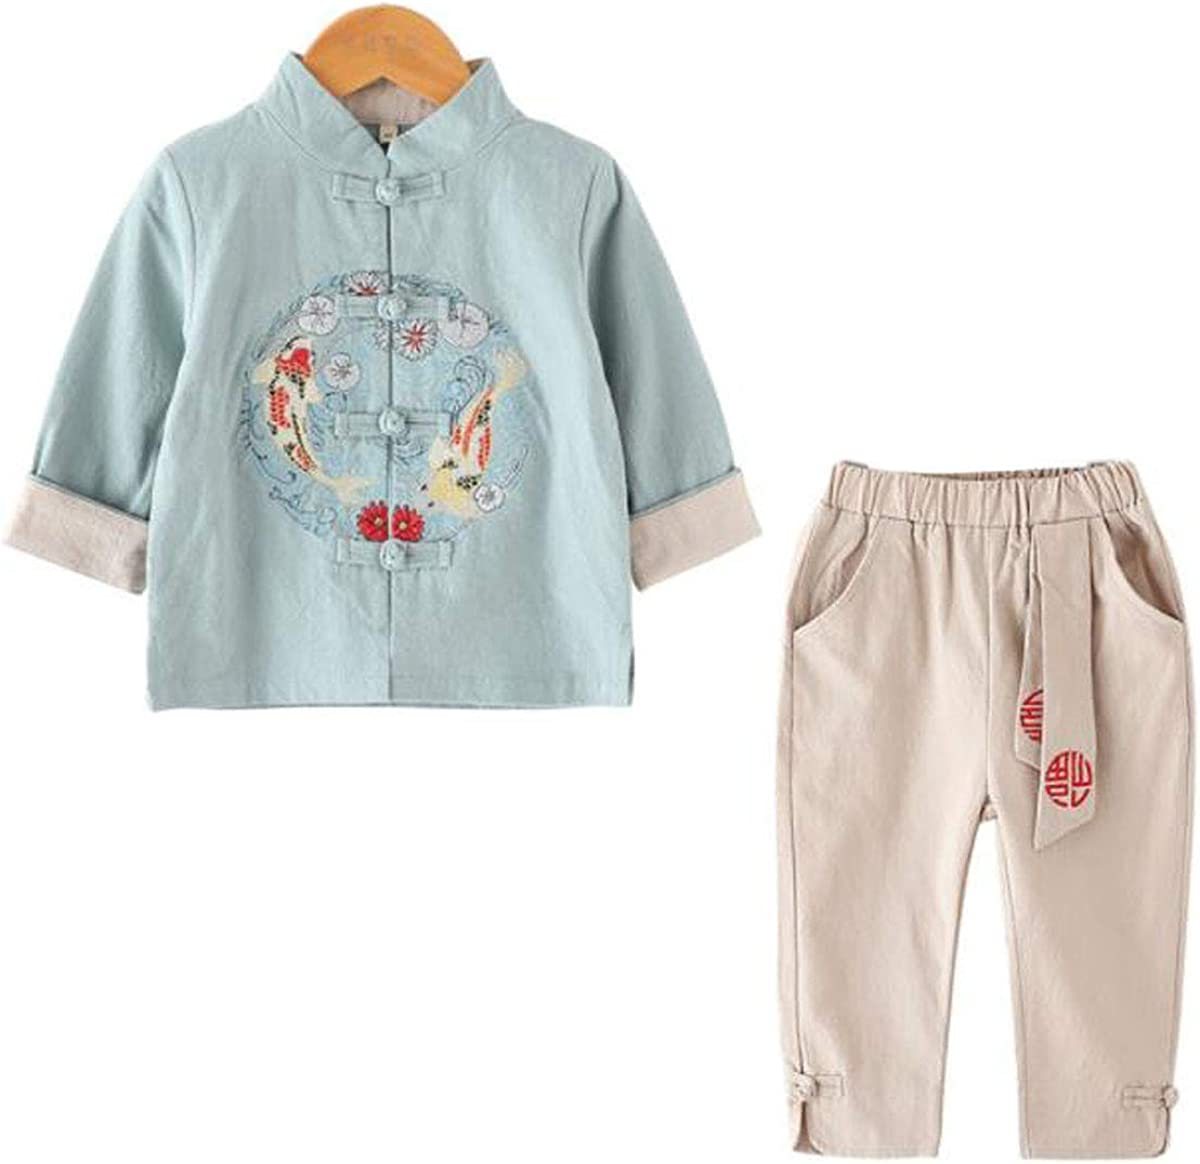 WenWen Toddler Little Boy's Fish Embroided Chinese Tang Suit Shirt and Pants Set (mintbeige,Height 47.2